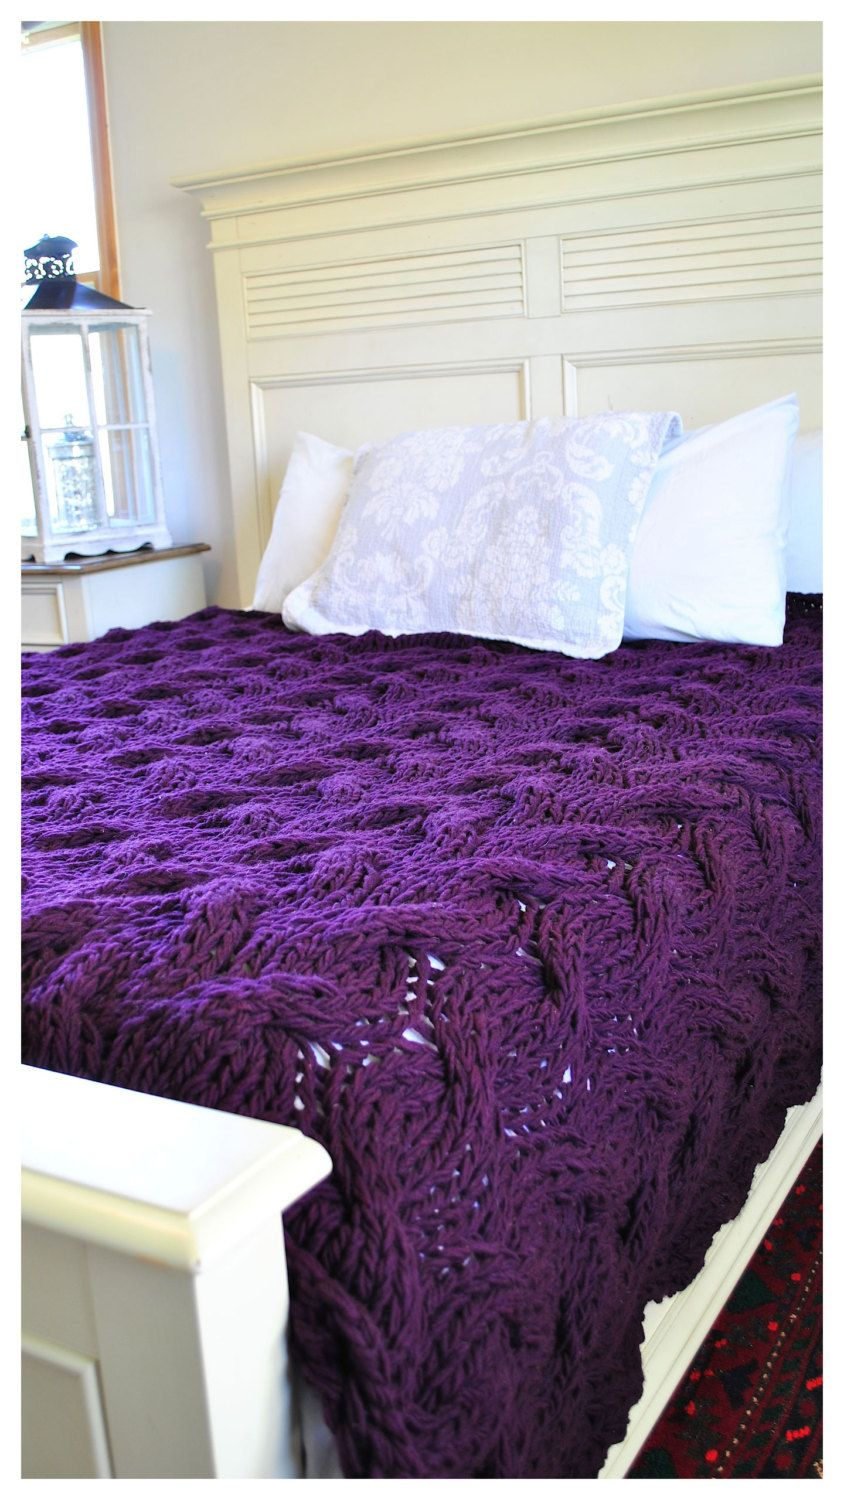 IN STOCK SALE: Queen size Chunky Cable Knit Blanket in deep purple Cabled  Wool Hand Knitted Blanket 1809.234.Q